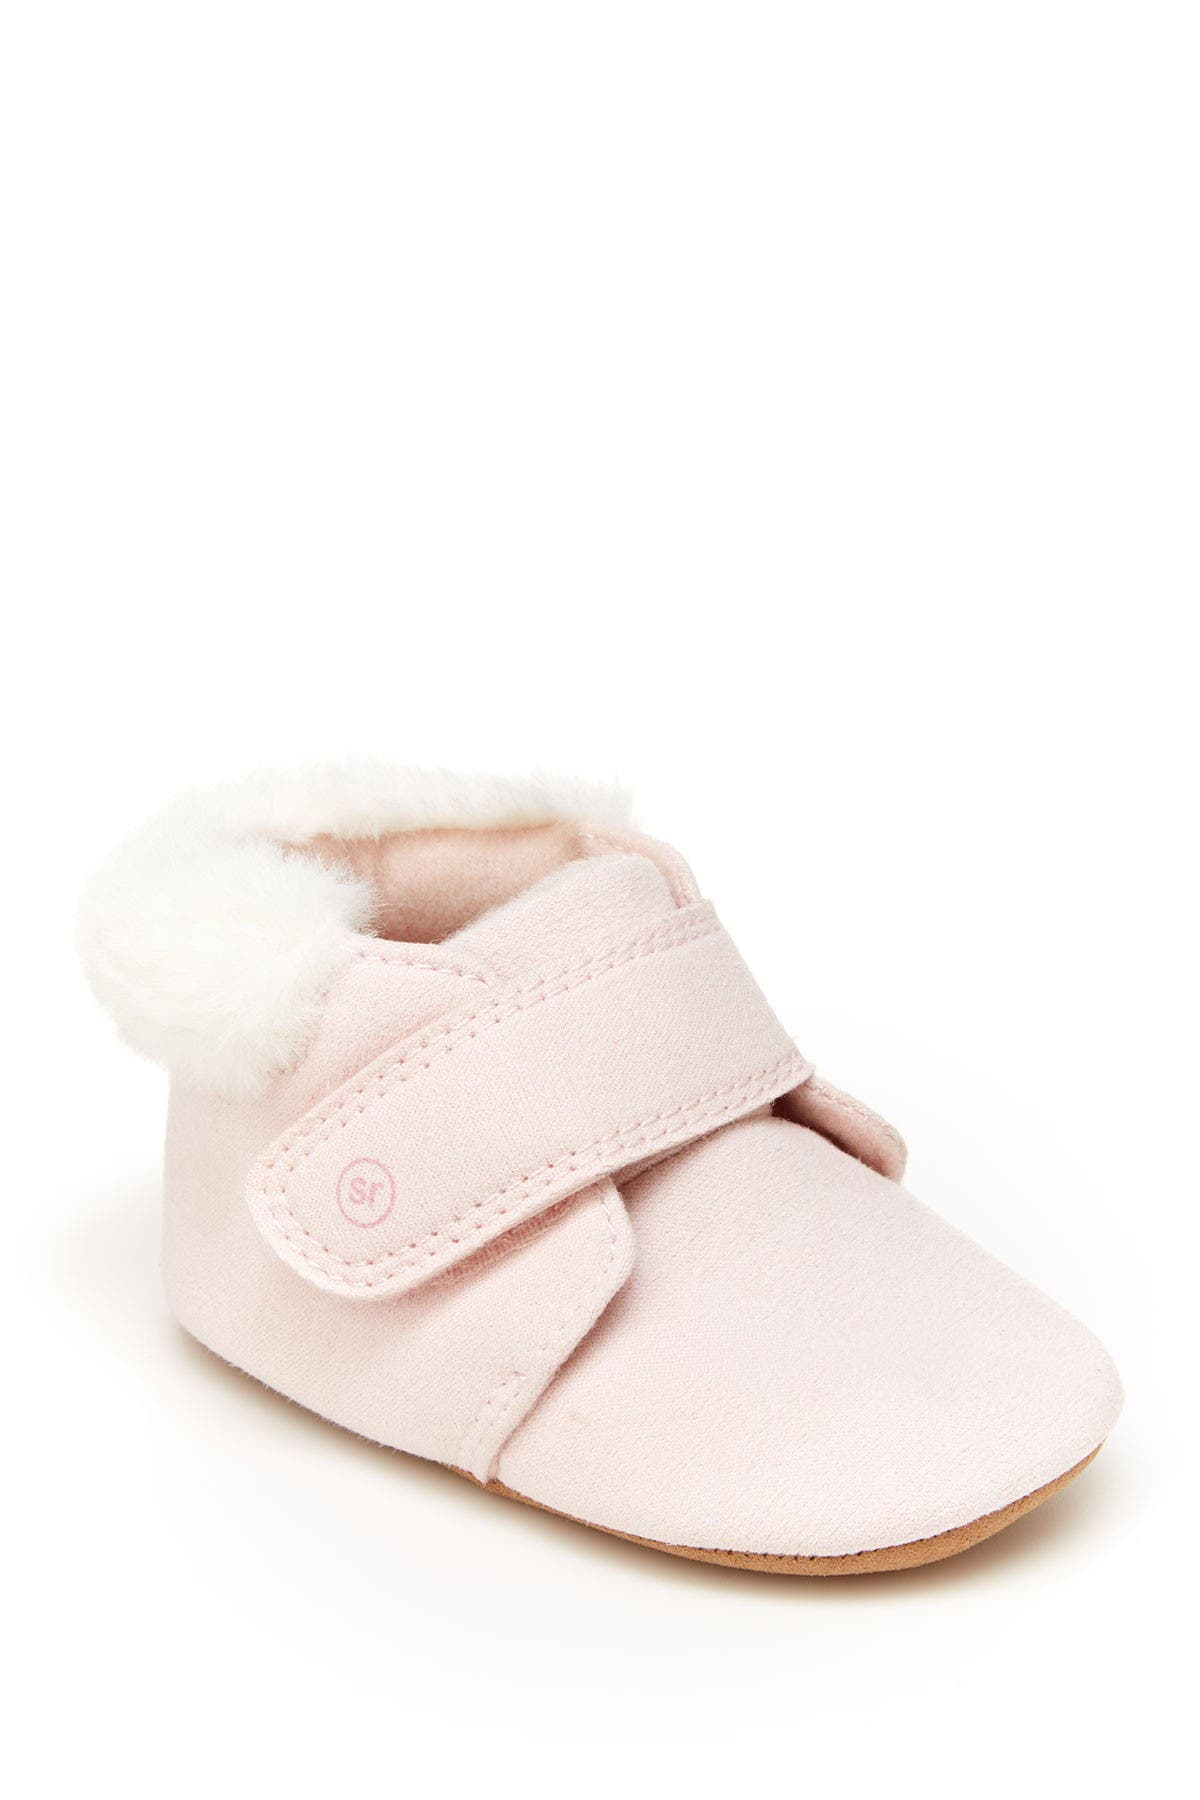 Image of Stride Rite Miles Faux Fur Trimmed Crib Shoe